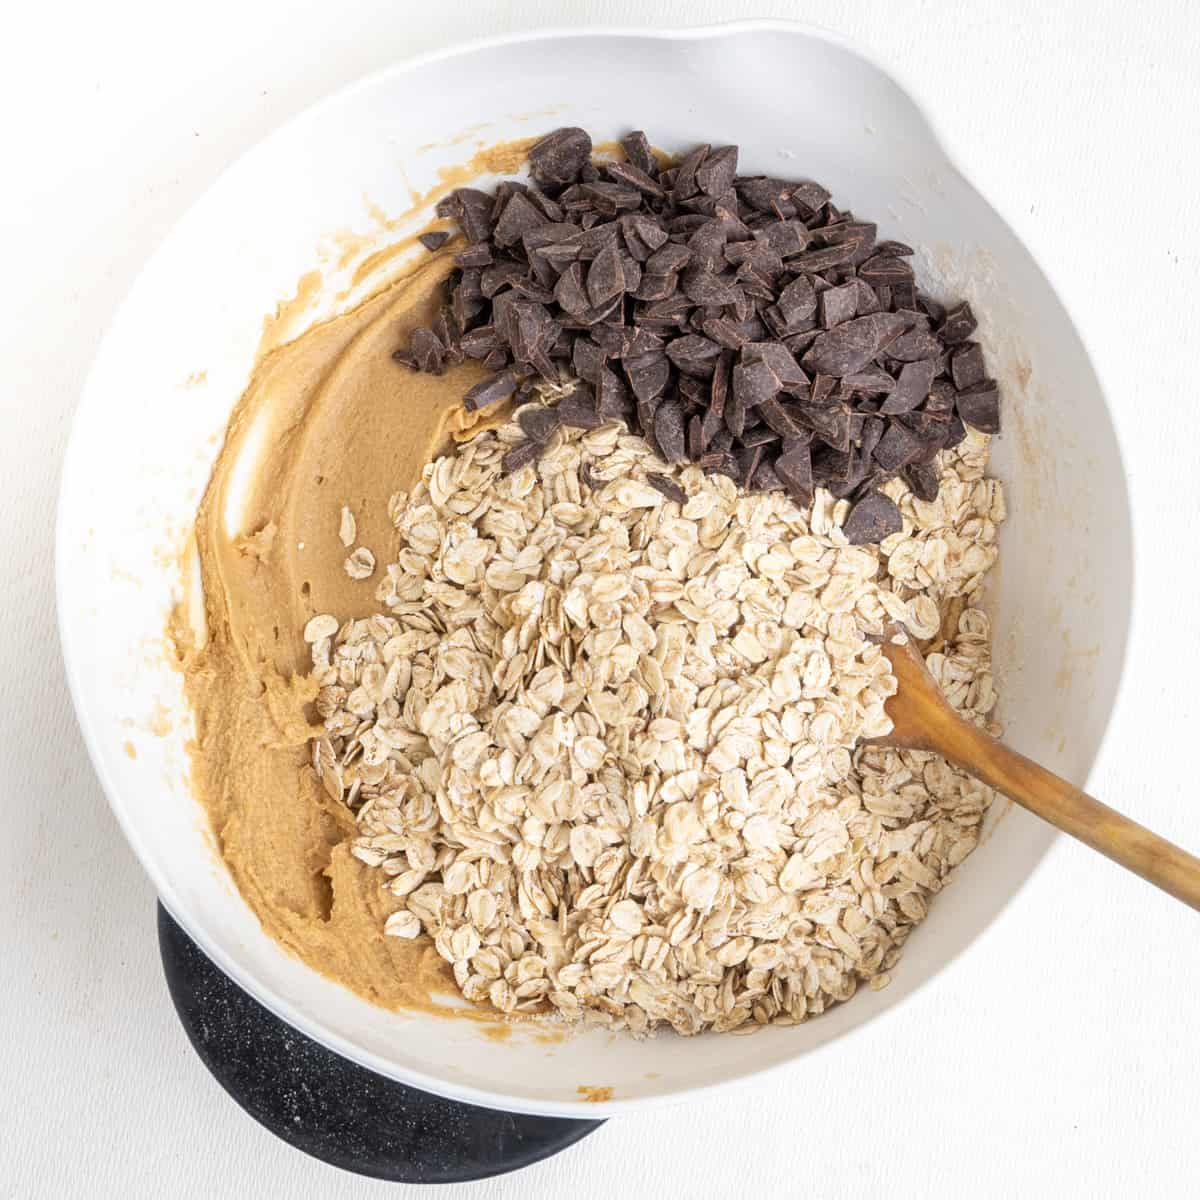 Rolled oats and chocolate chips are stirred into cookie dough.